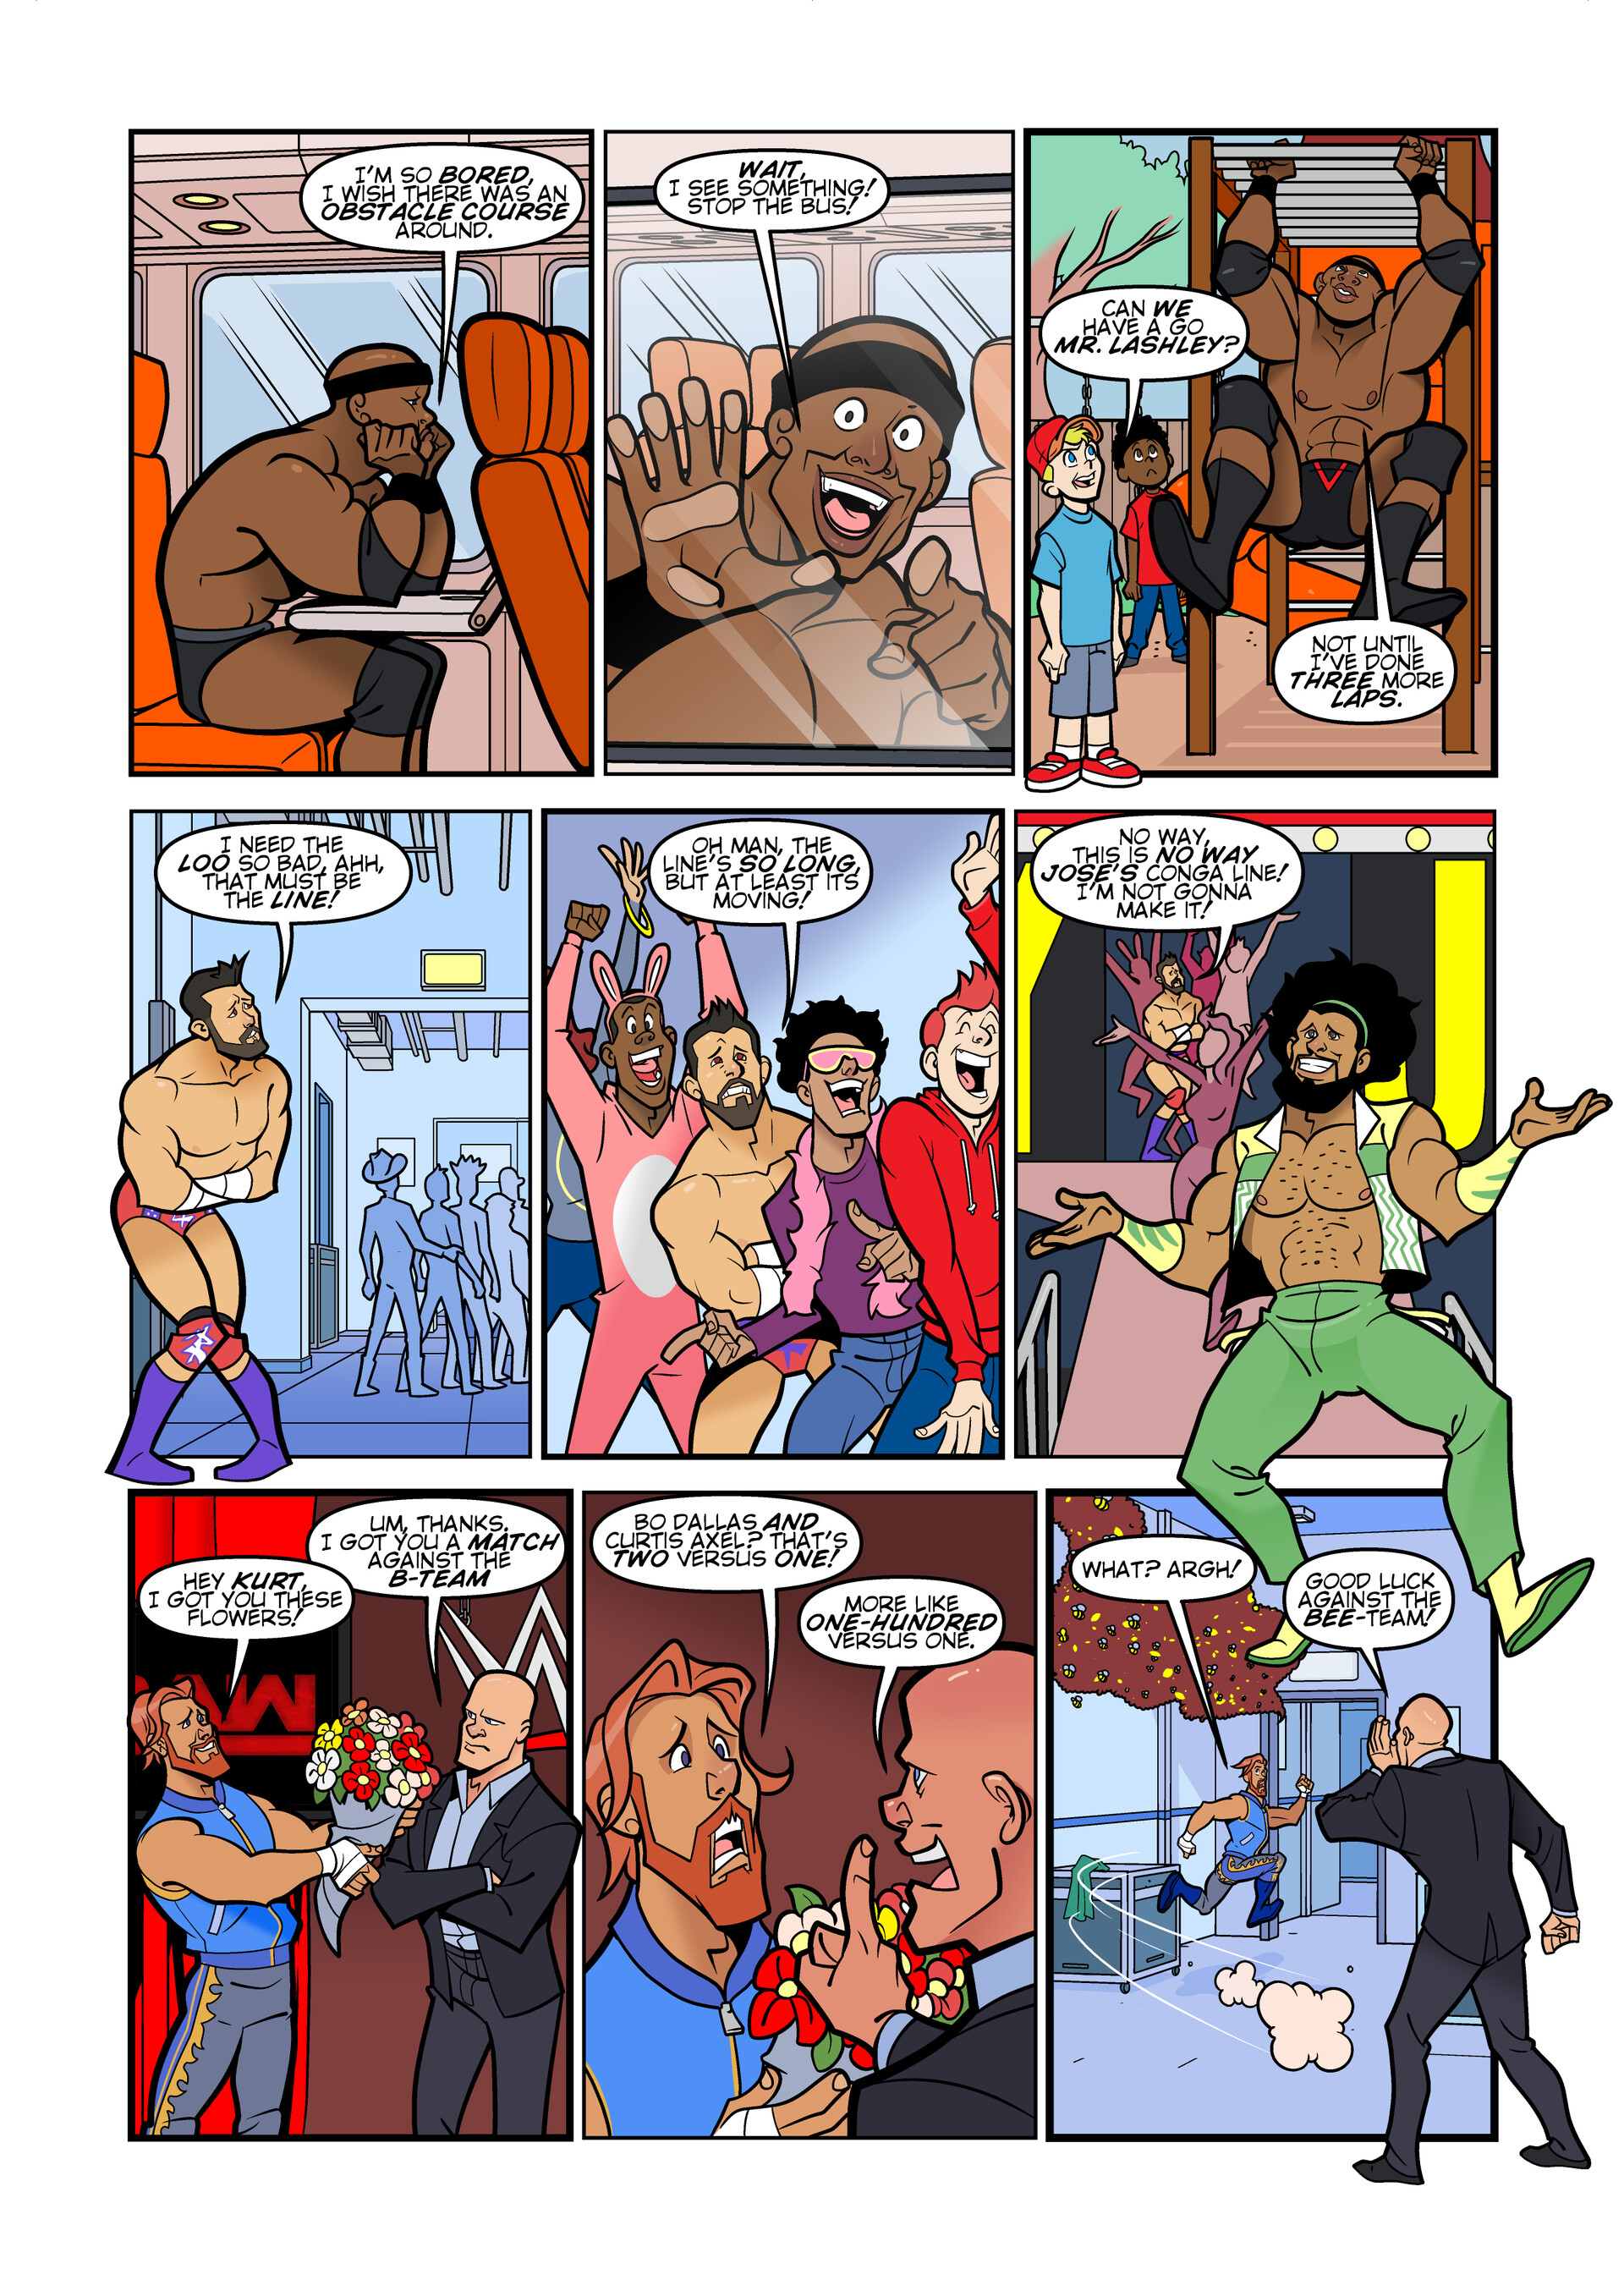 WWE comic strips for WWE Kids Magazine #142